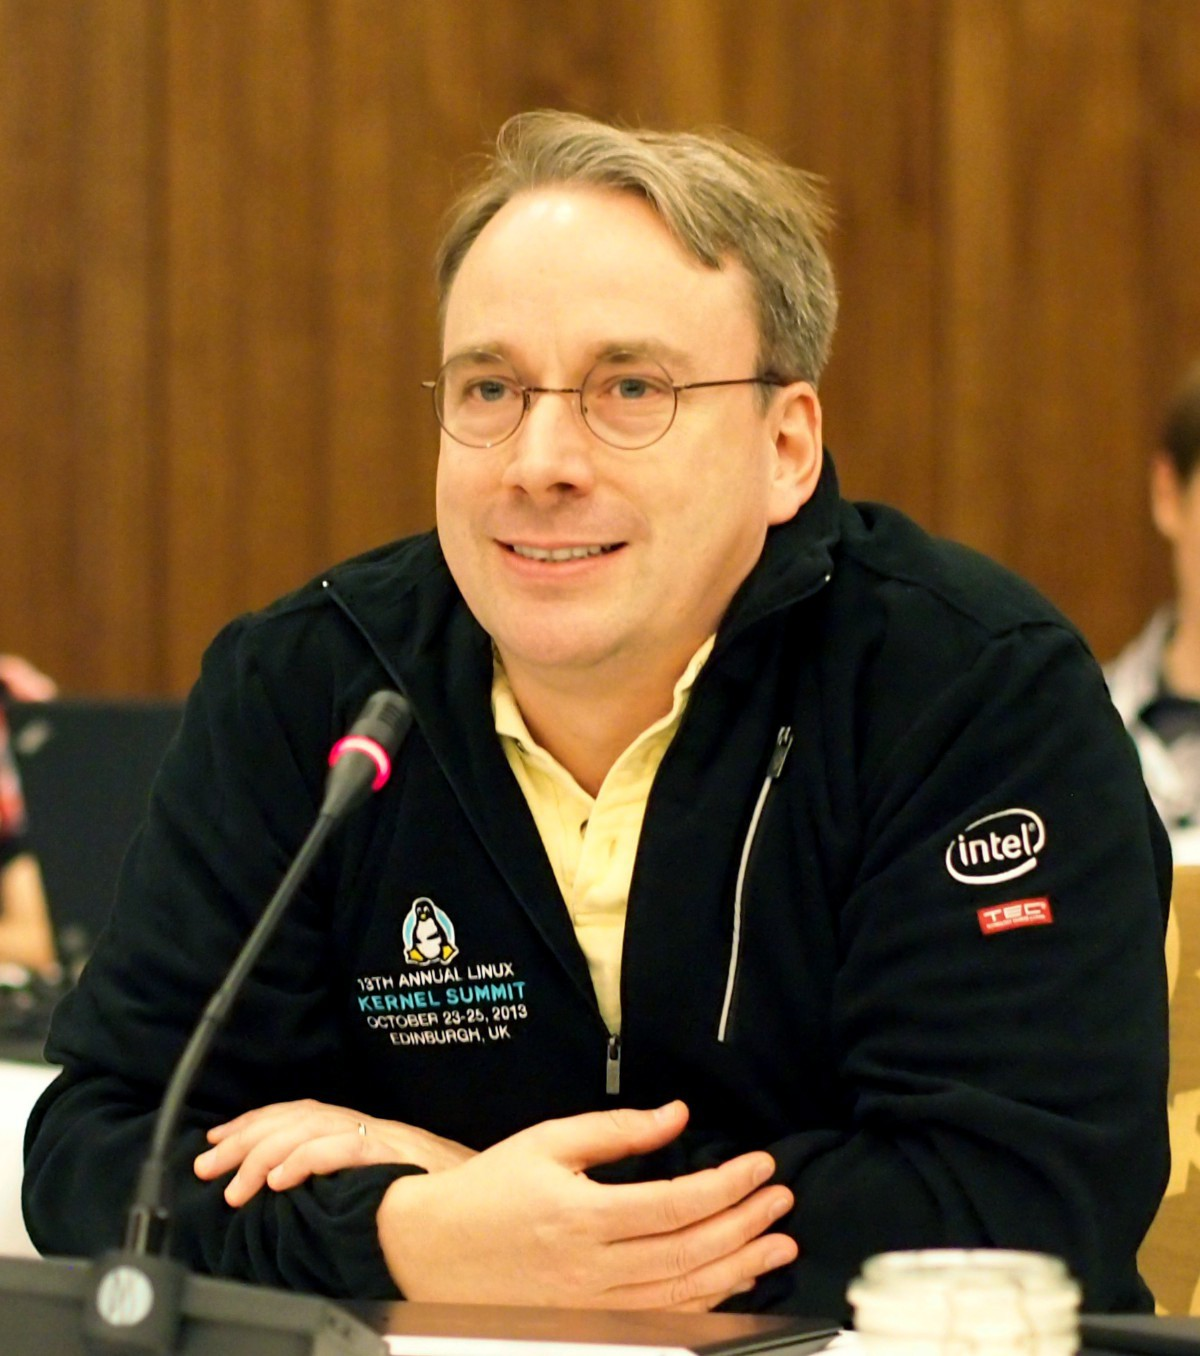 Linus Torvalds at the 2013 Kernel Summit [LWN.net]